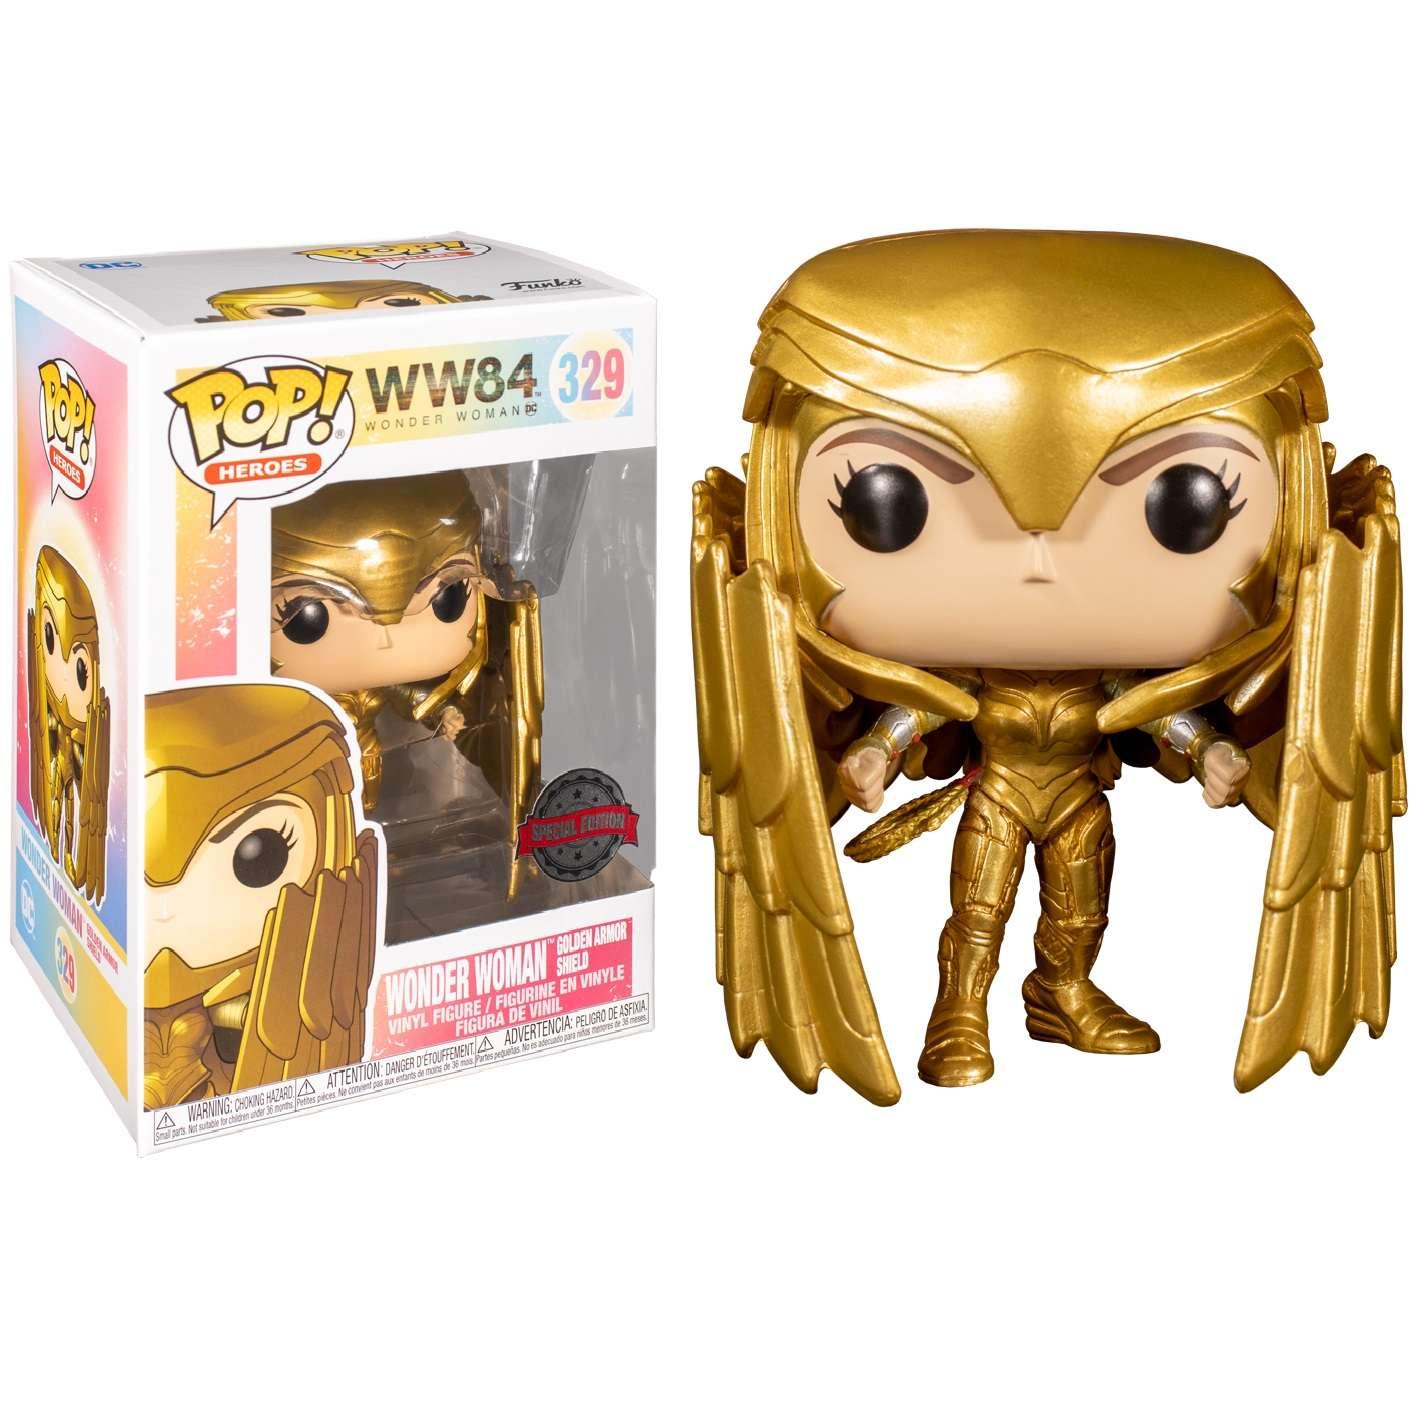 POP!: Wonder Woman 1984 - Wonder Woman Golden Armor Shield (Exclusive) Photo